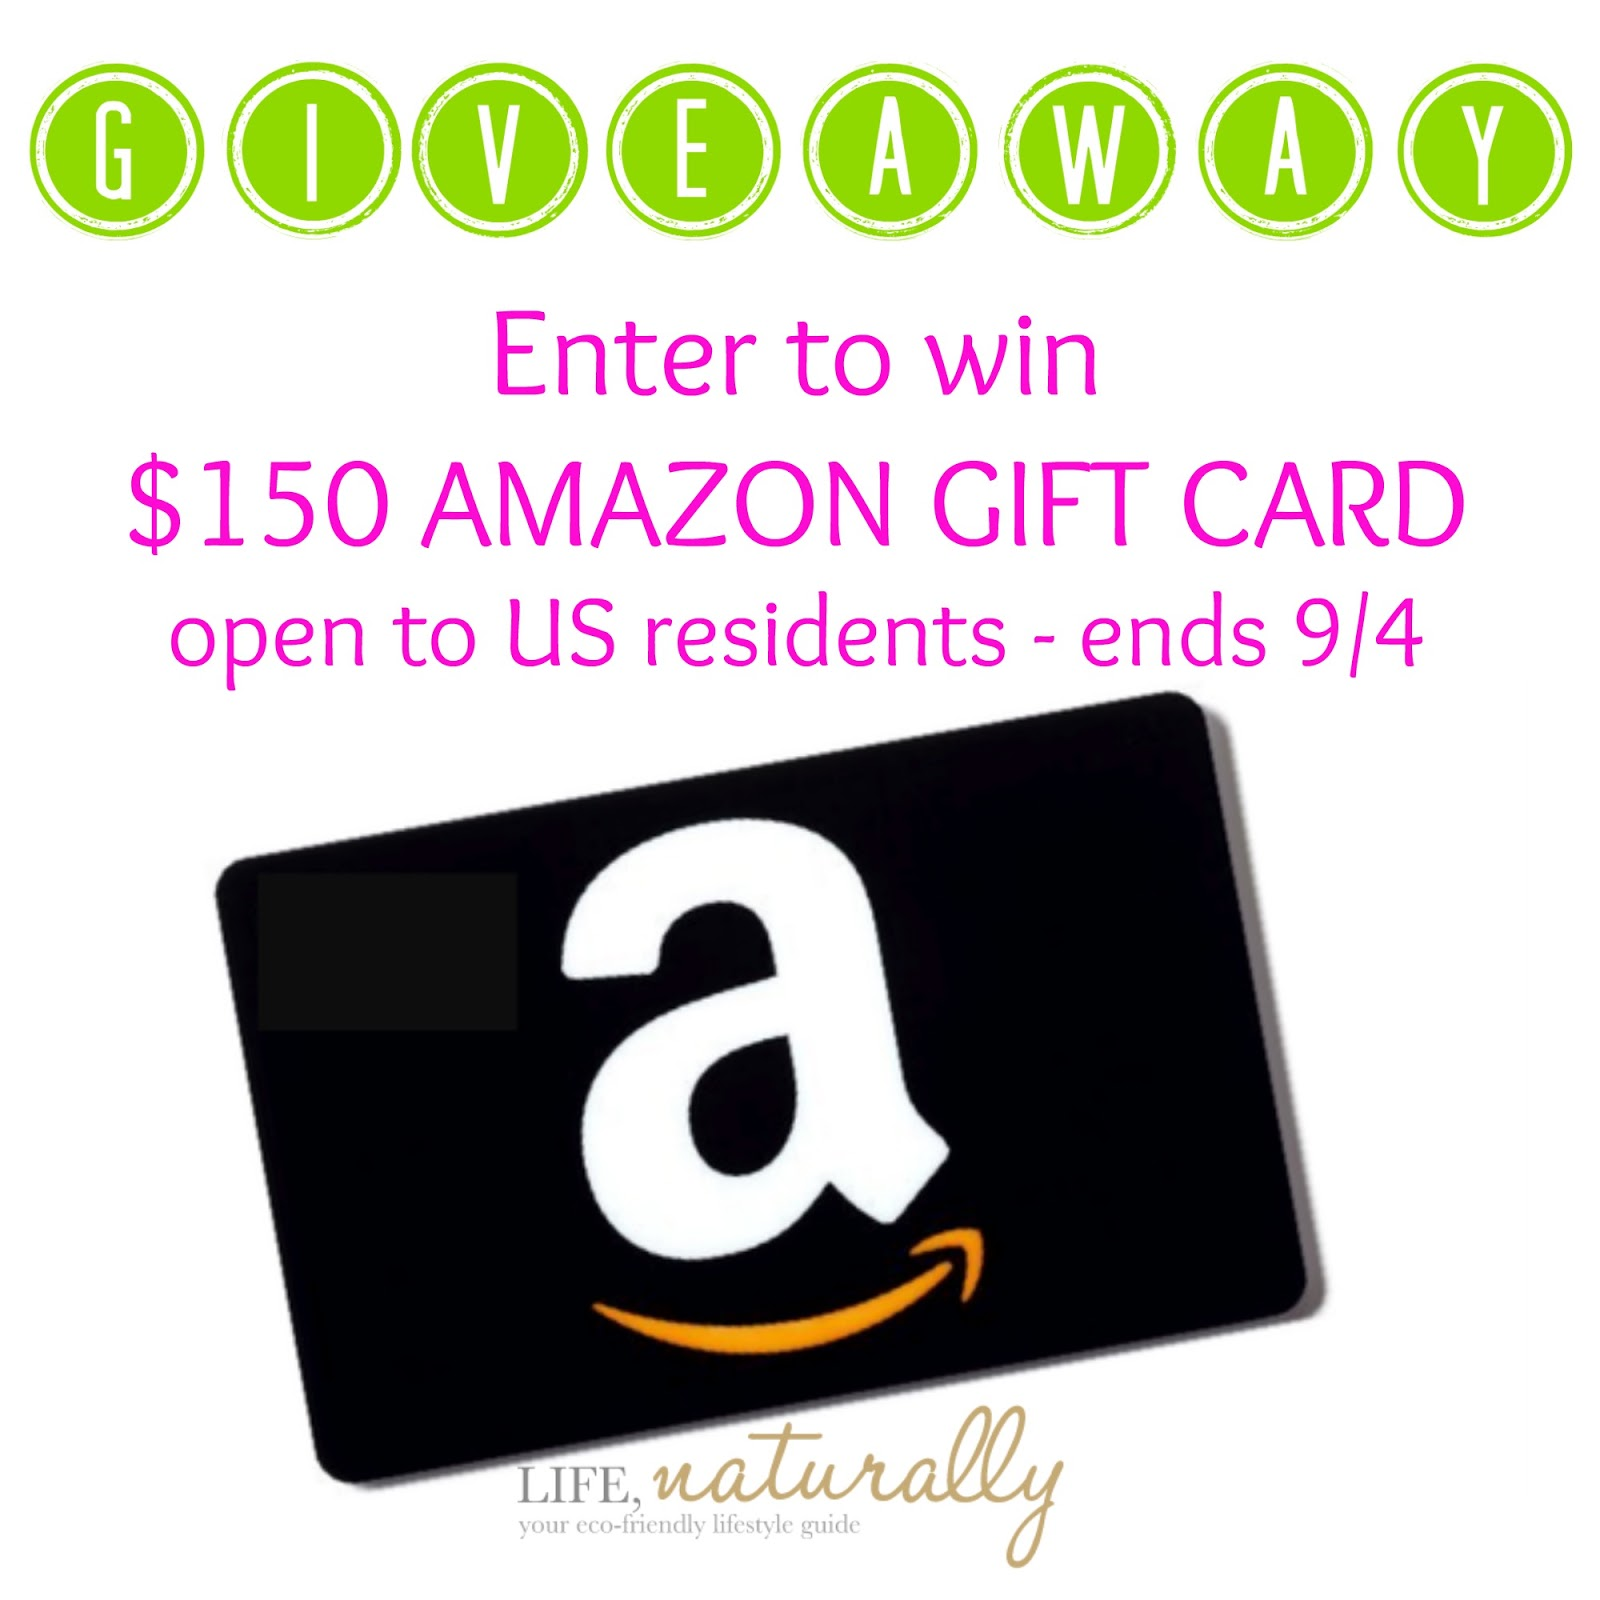 Shop hundreds of gift cards from Starbucks, Nordstrom, GameStop, Whole Foods, Sephora, and more. Send r0nd.tk Gift Cards by email, print-at-home, or mail with free shipping. From The Community.